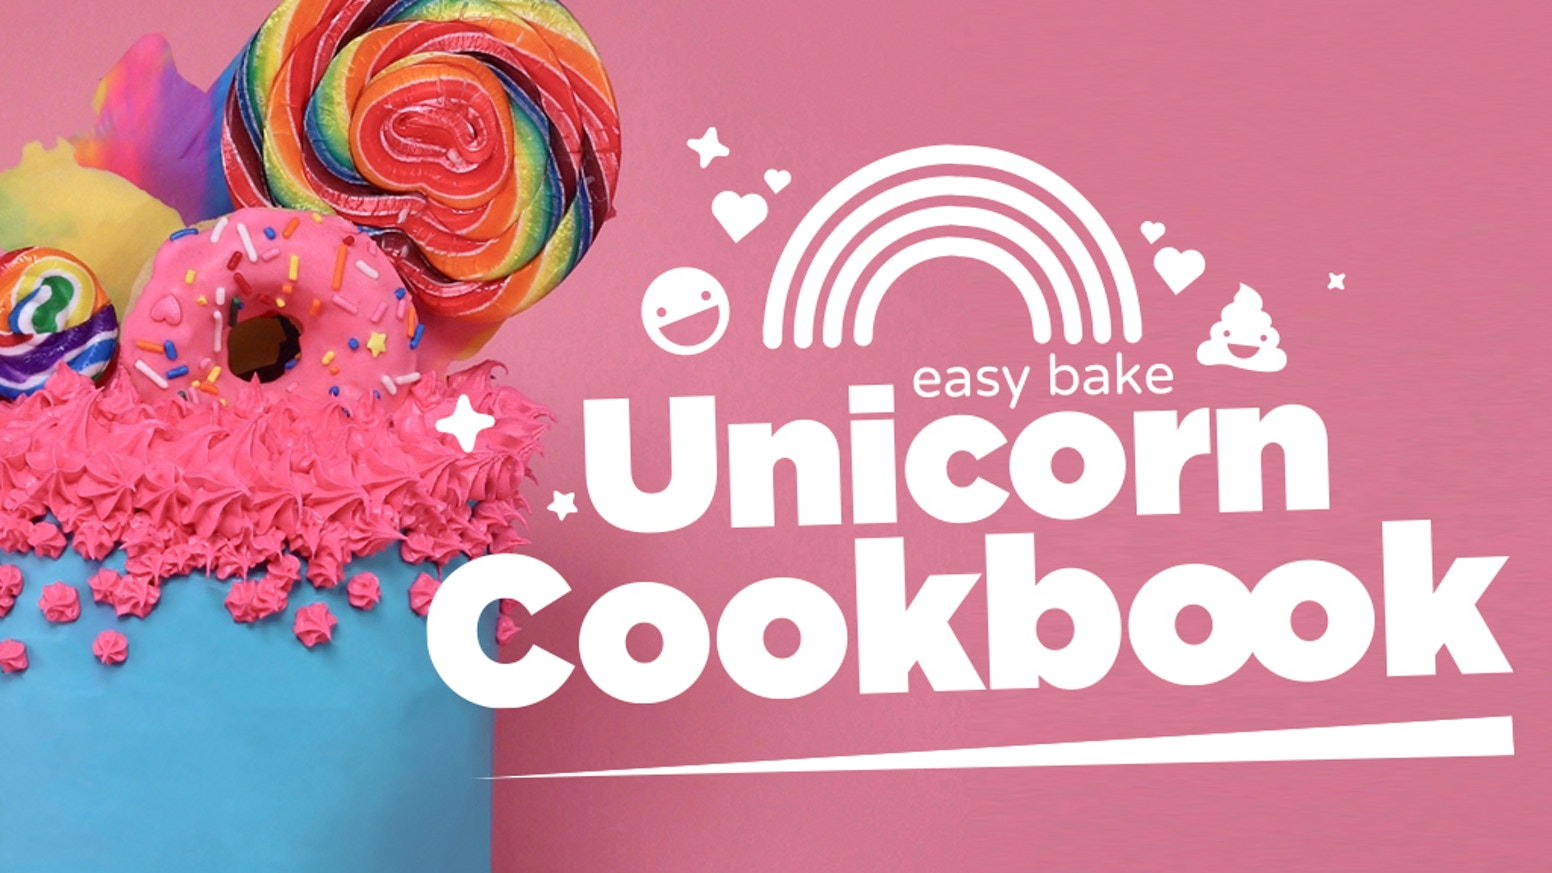 The Easy Bake Unicorn Cookbook! by Cinderly